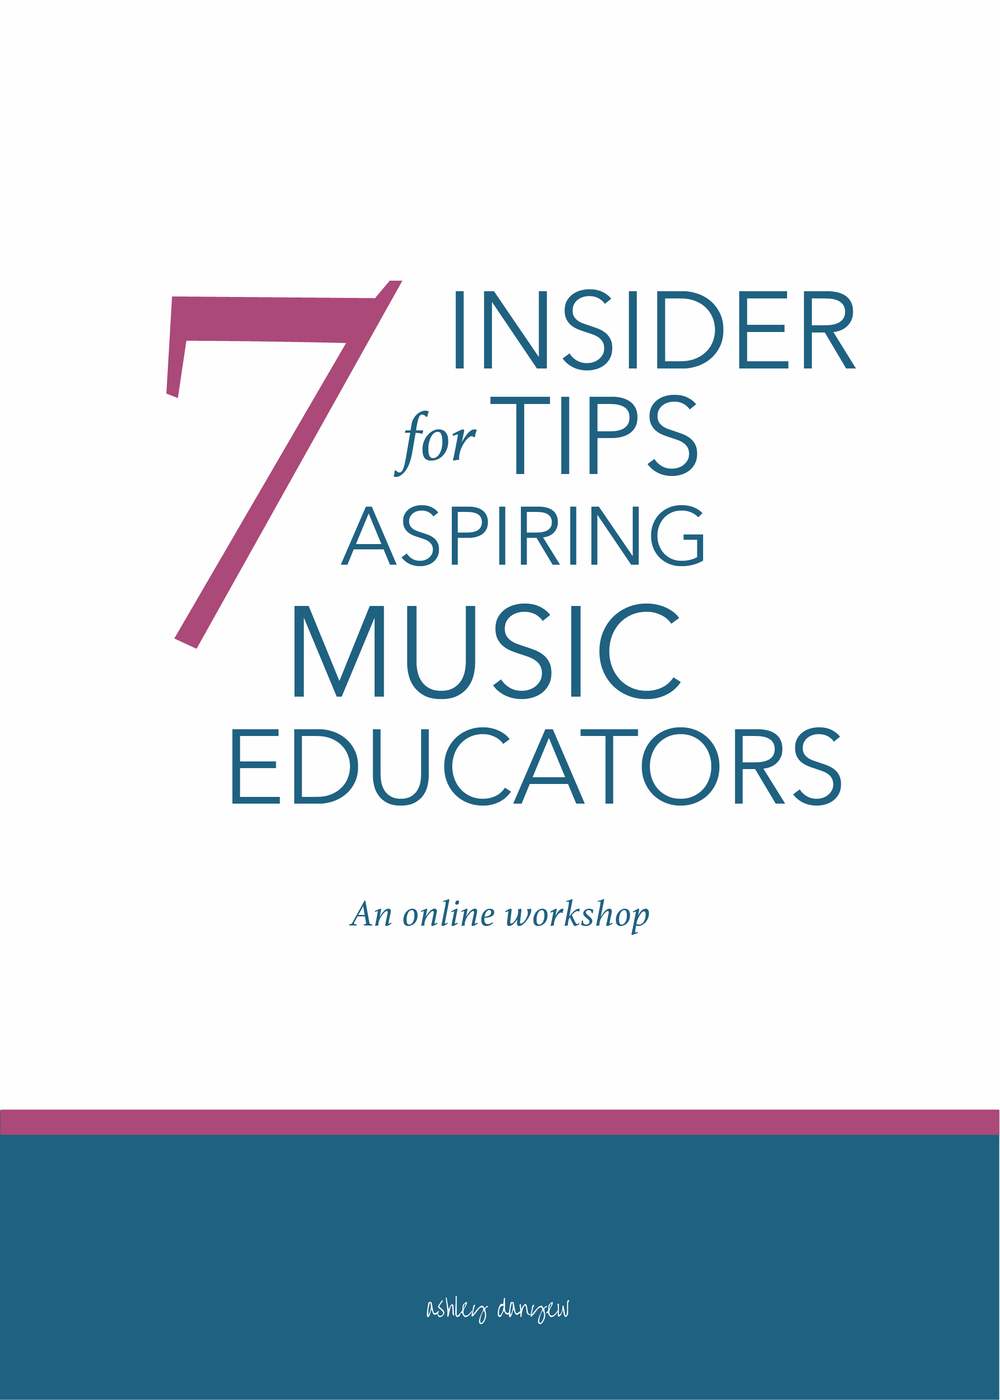 7 Insider Tips for Aspiring Music Educators-60.png